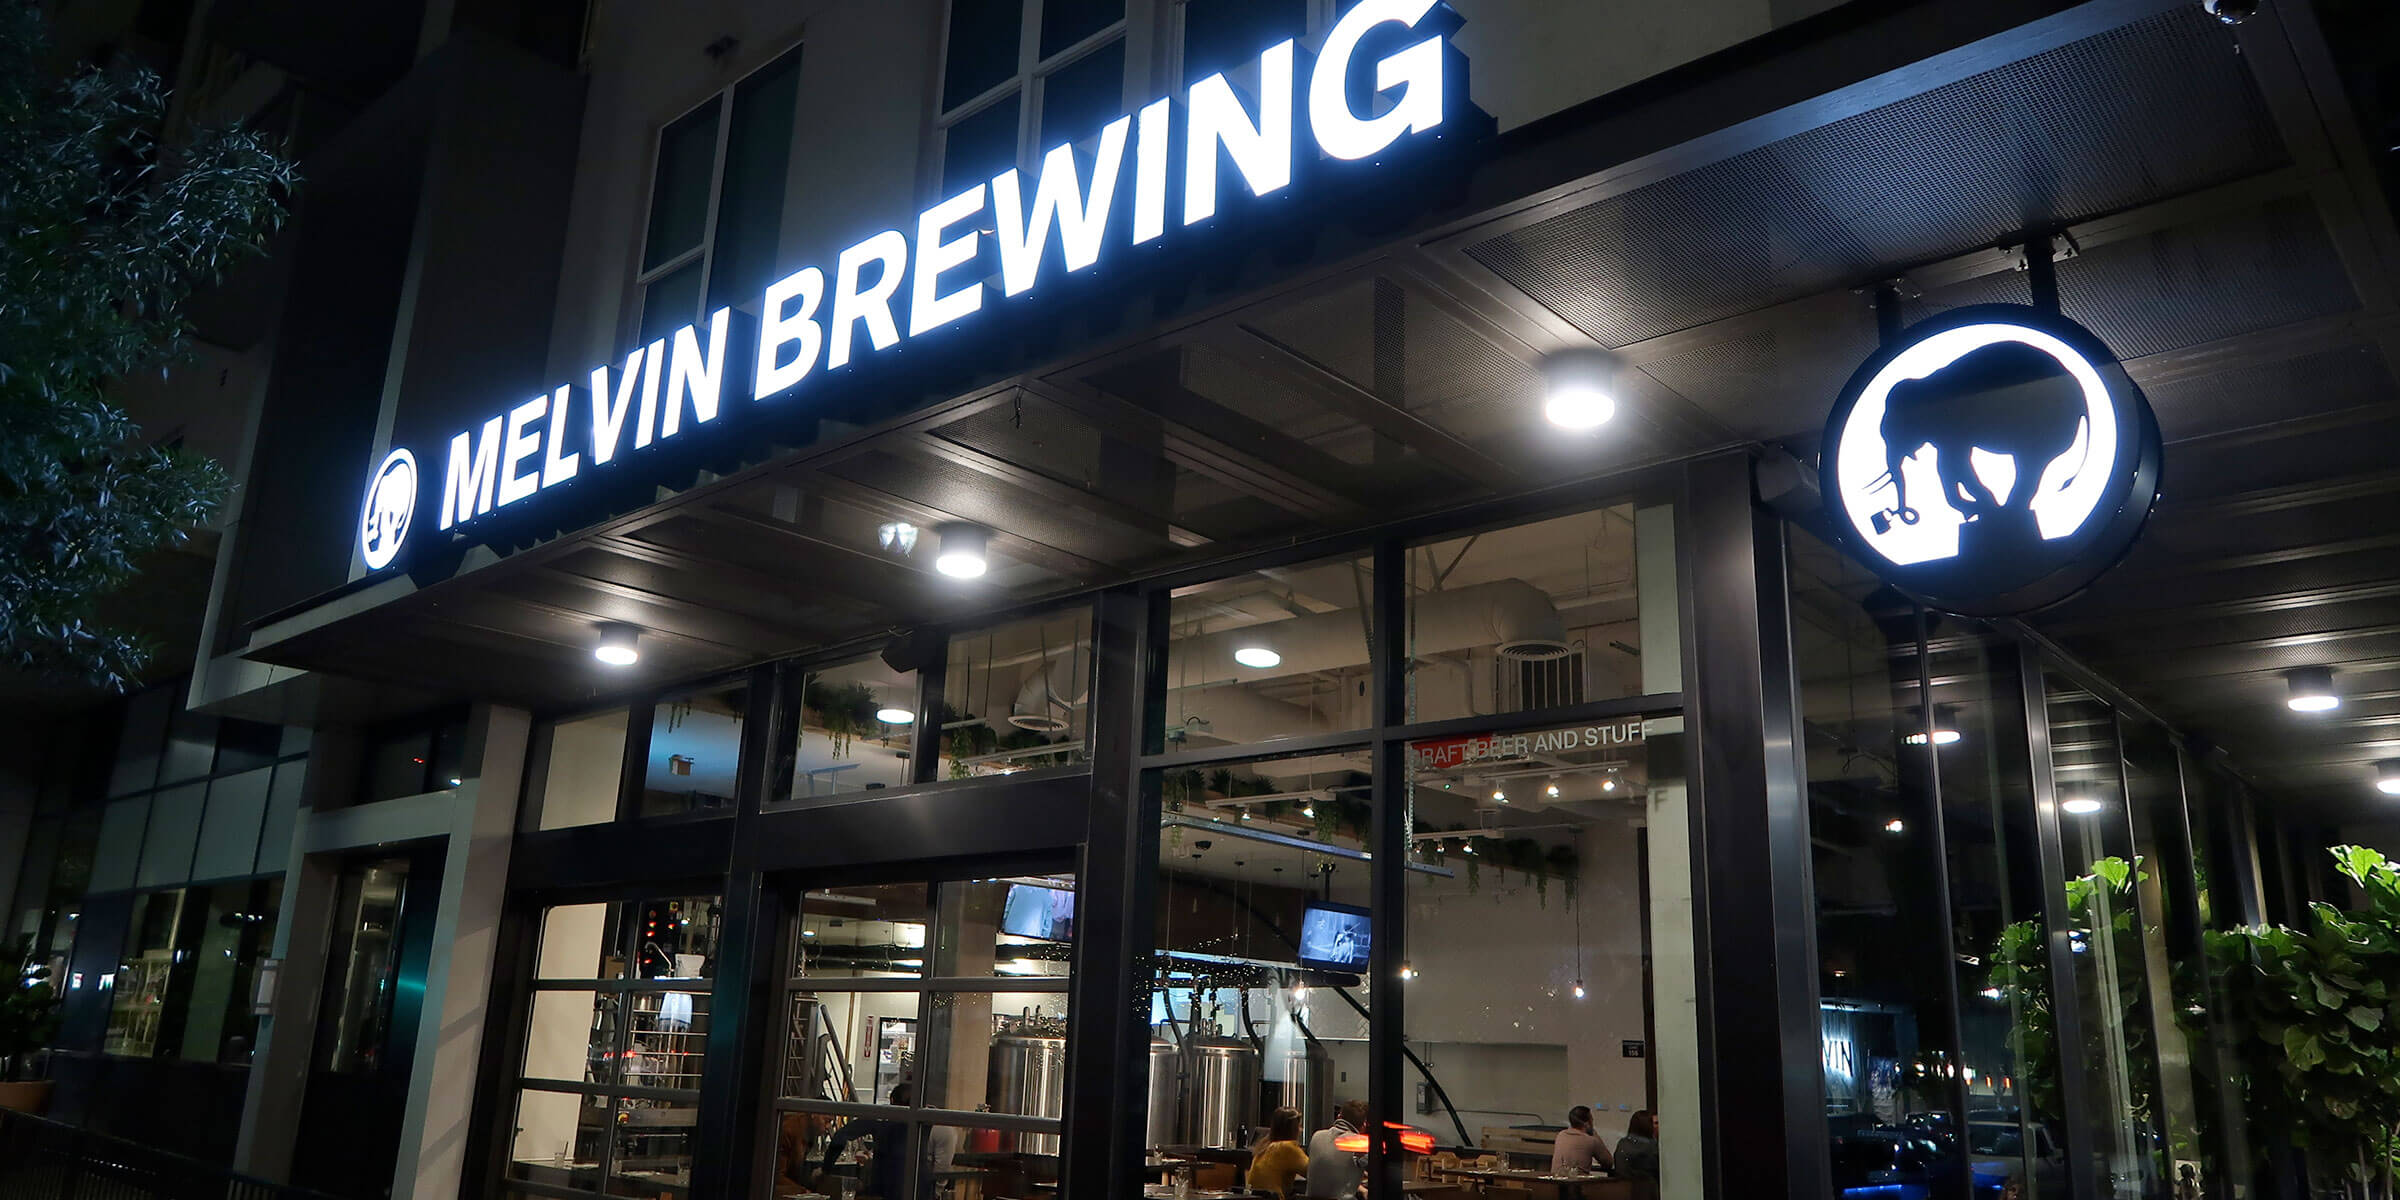 Outside the former Melvin Brewing taproom in San Diego, California